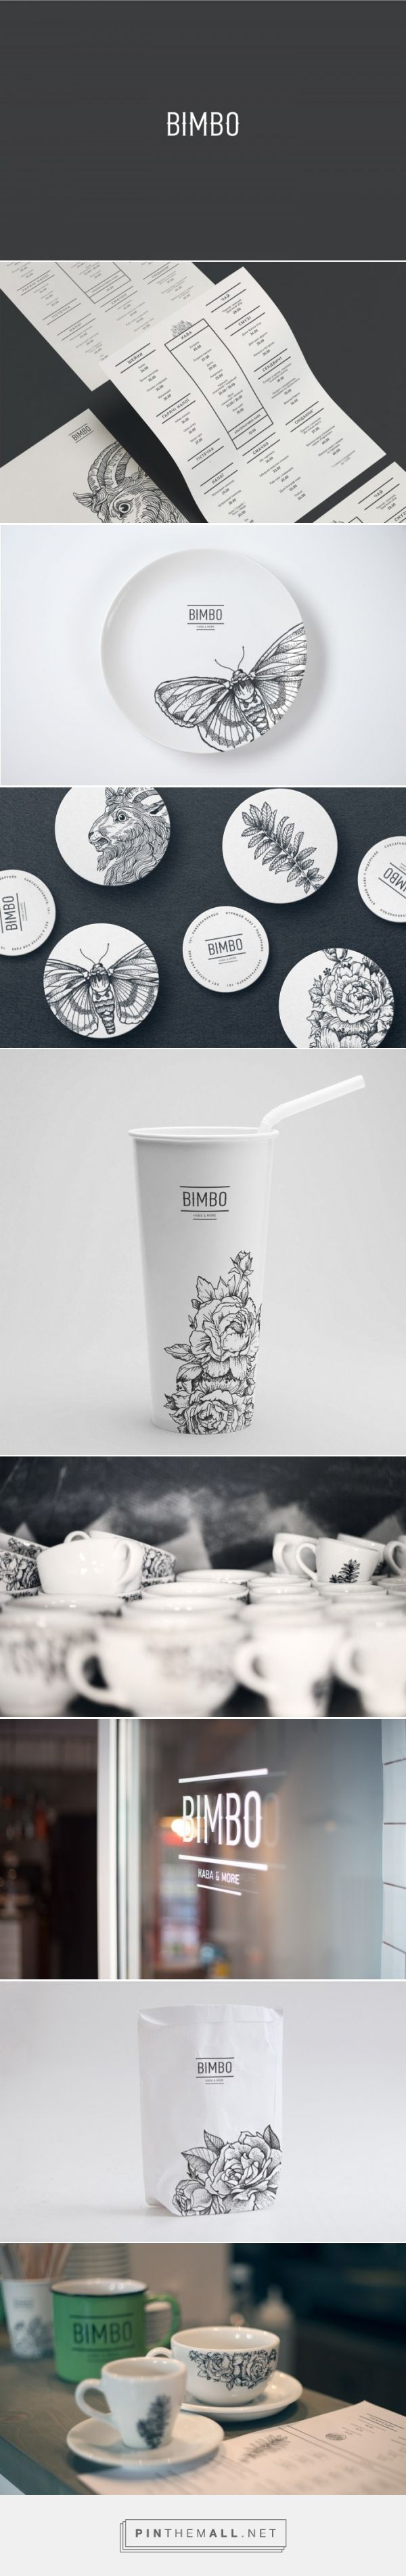 Bimbo Coffee Bar Branding by Andrii Pavlov on Behance | Fivestar Branding – Design and Branding Agency & Inspiration Gallery